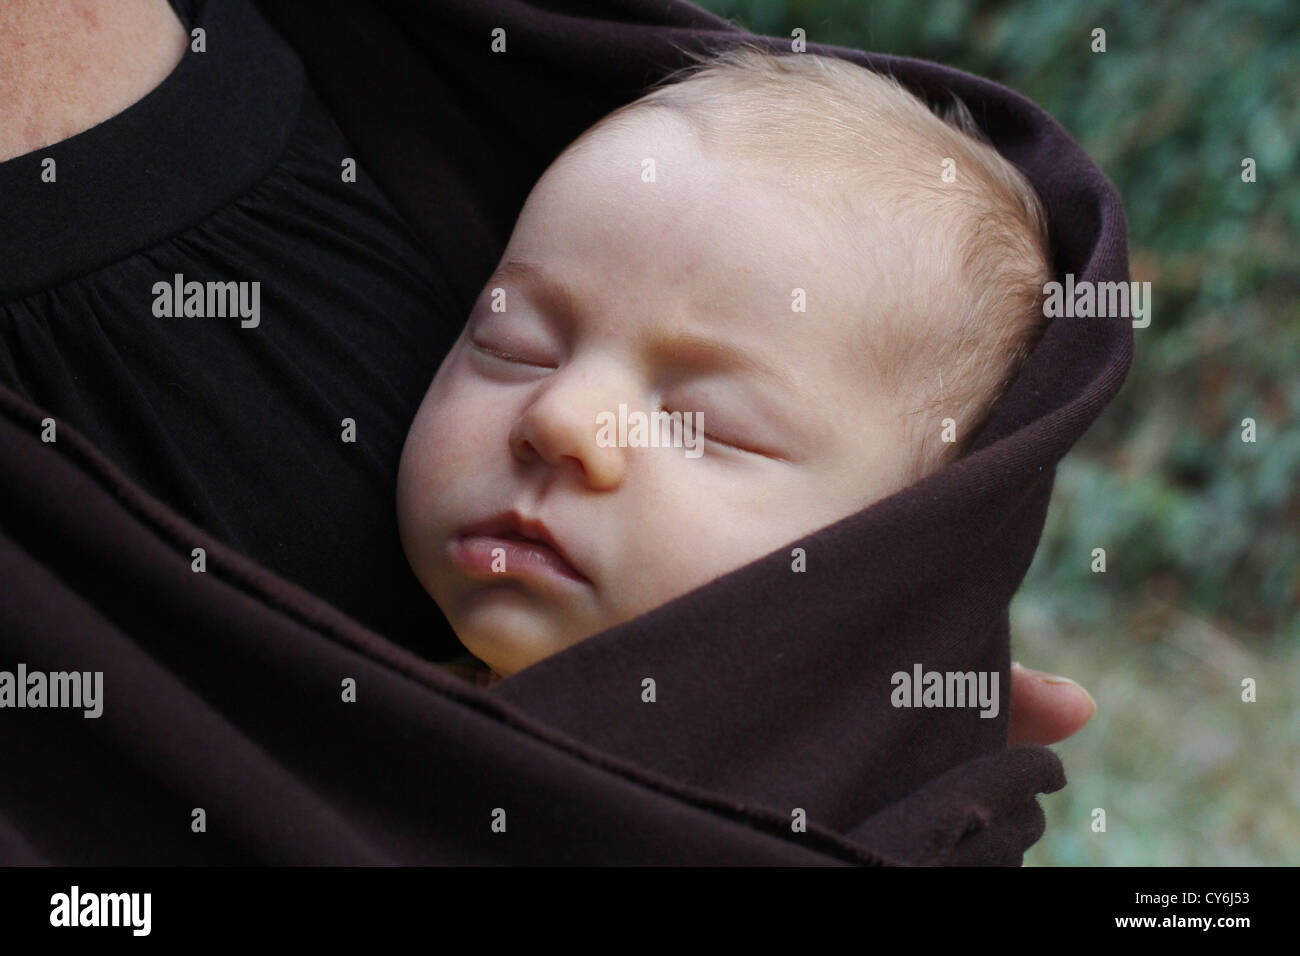 A small baby sleeping while wrapped in a sling. - Stock Image